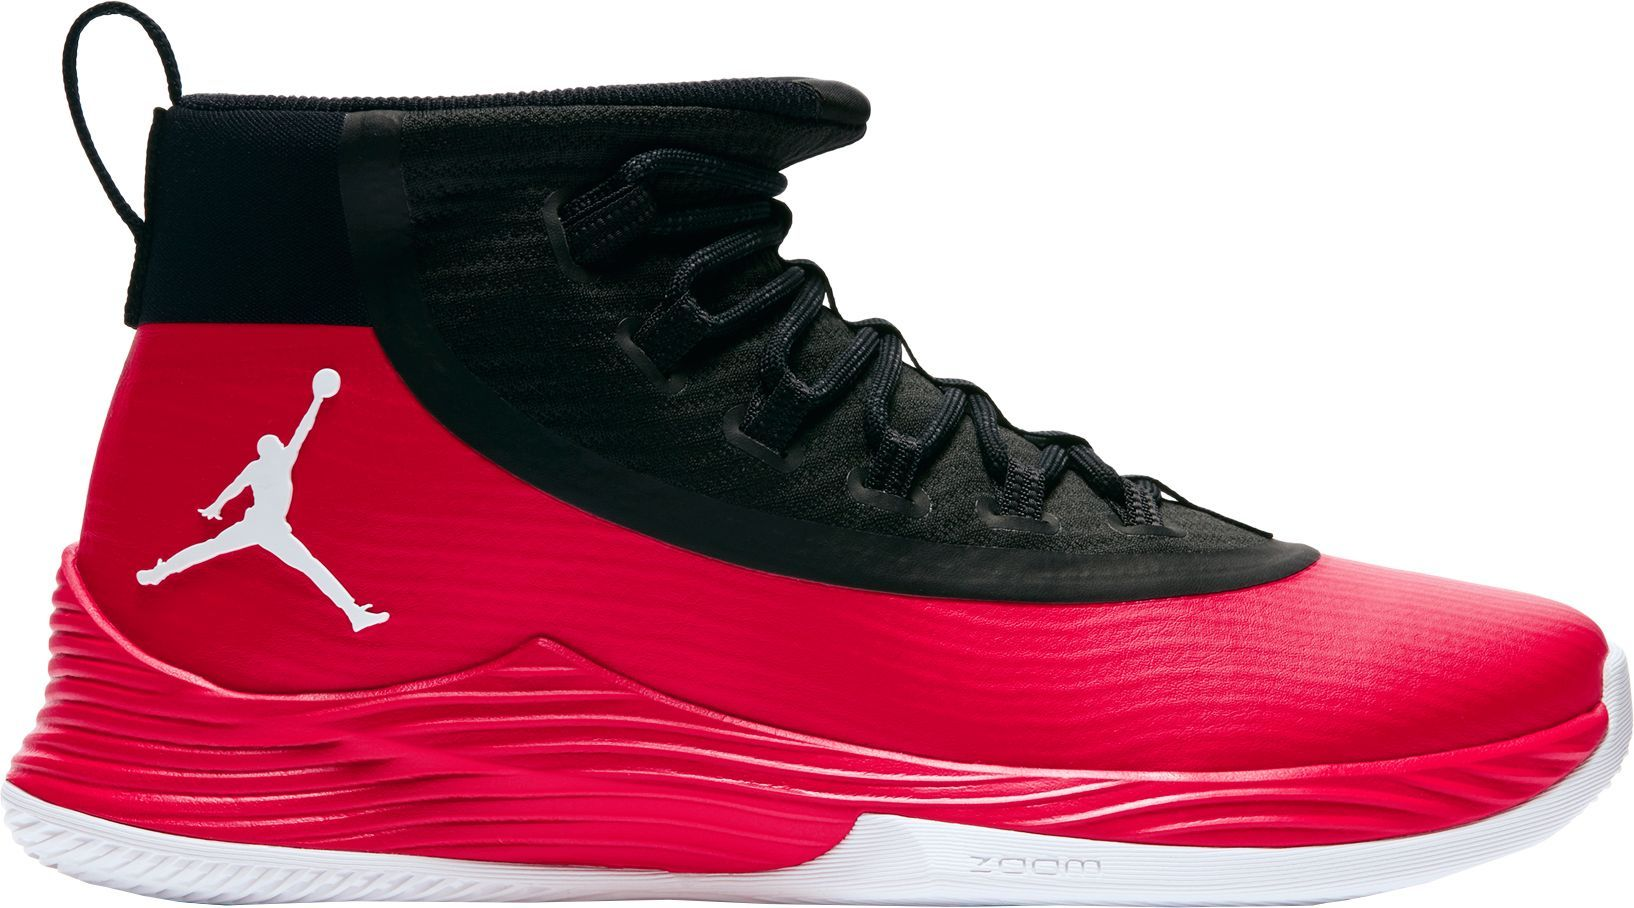 sale retailer 45c3d b20ae ... sale jordan mens ultra fly 2 basketball shoes size 11.0 red basketball  shoes 3667d 0193f